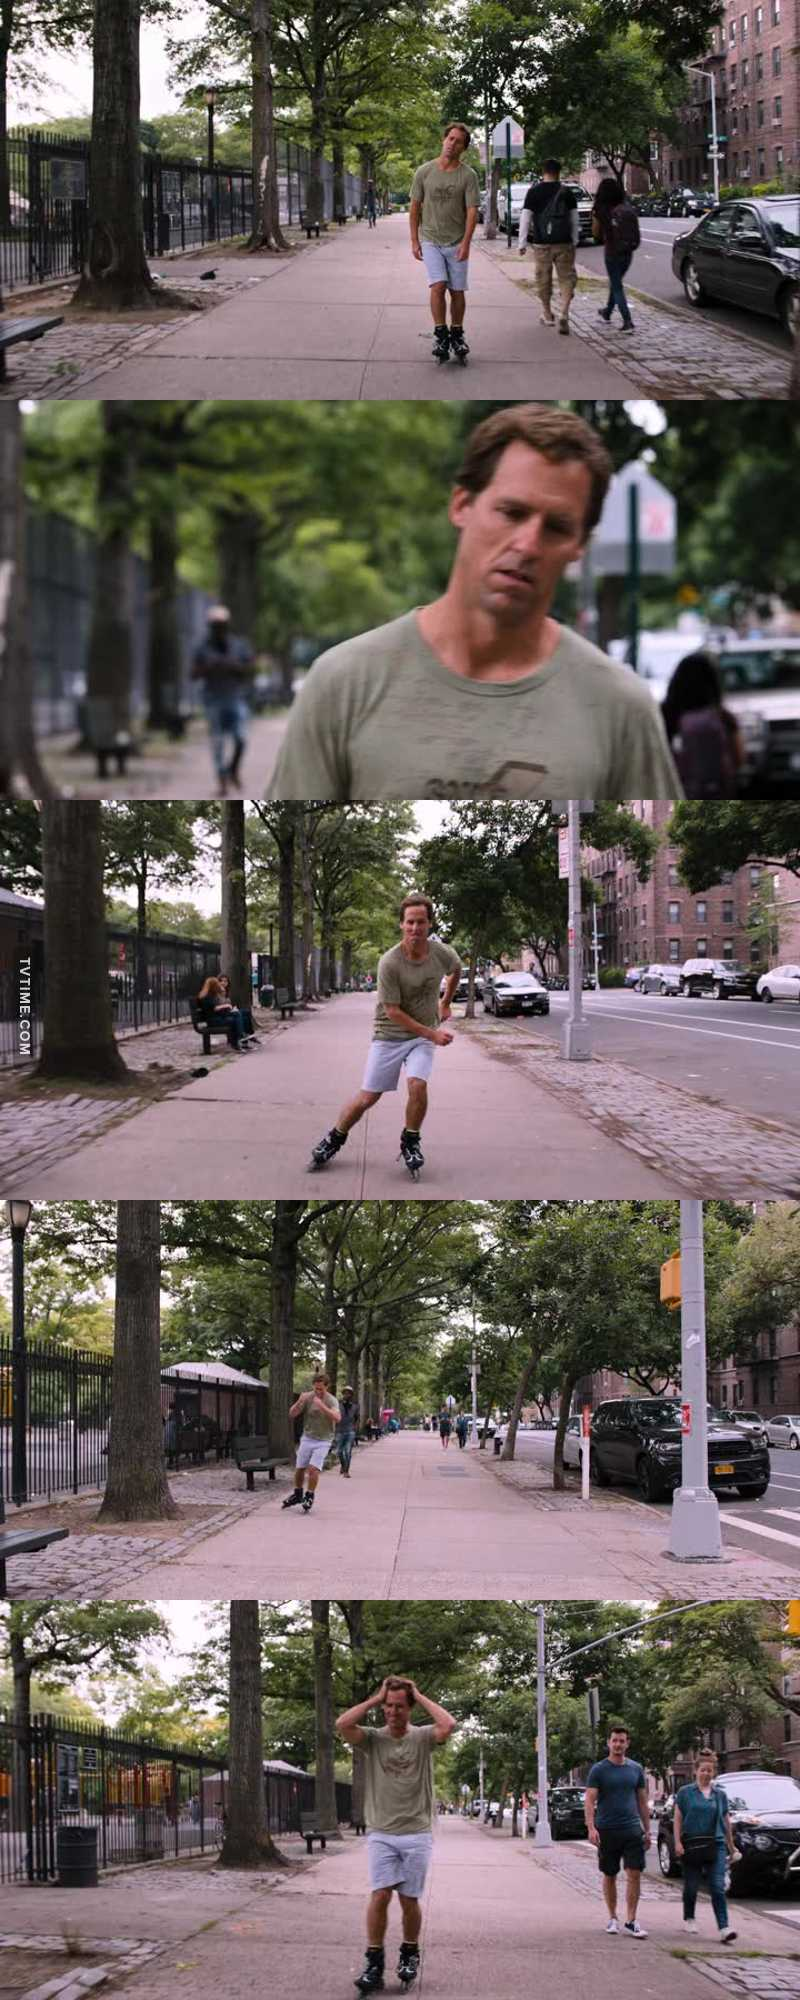 That rollerblading scene was everything..!!! 😂😂